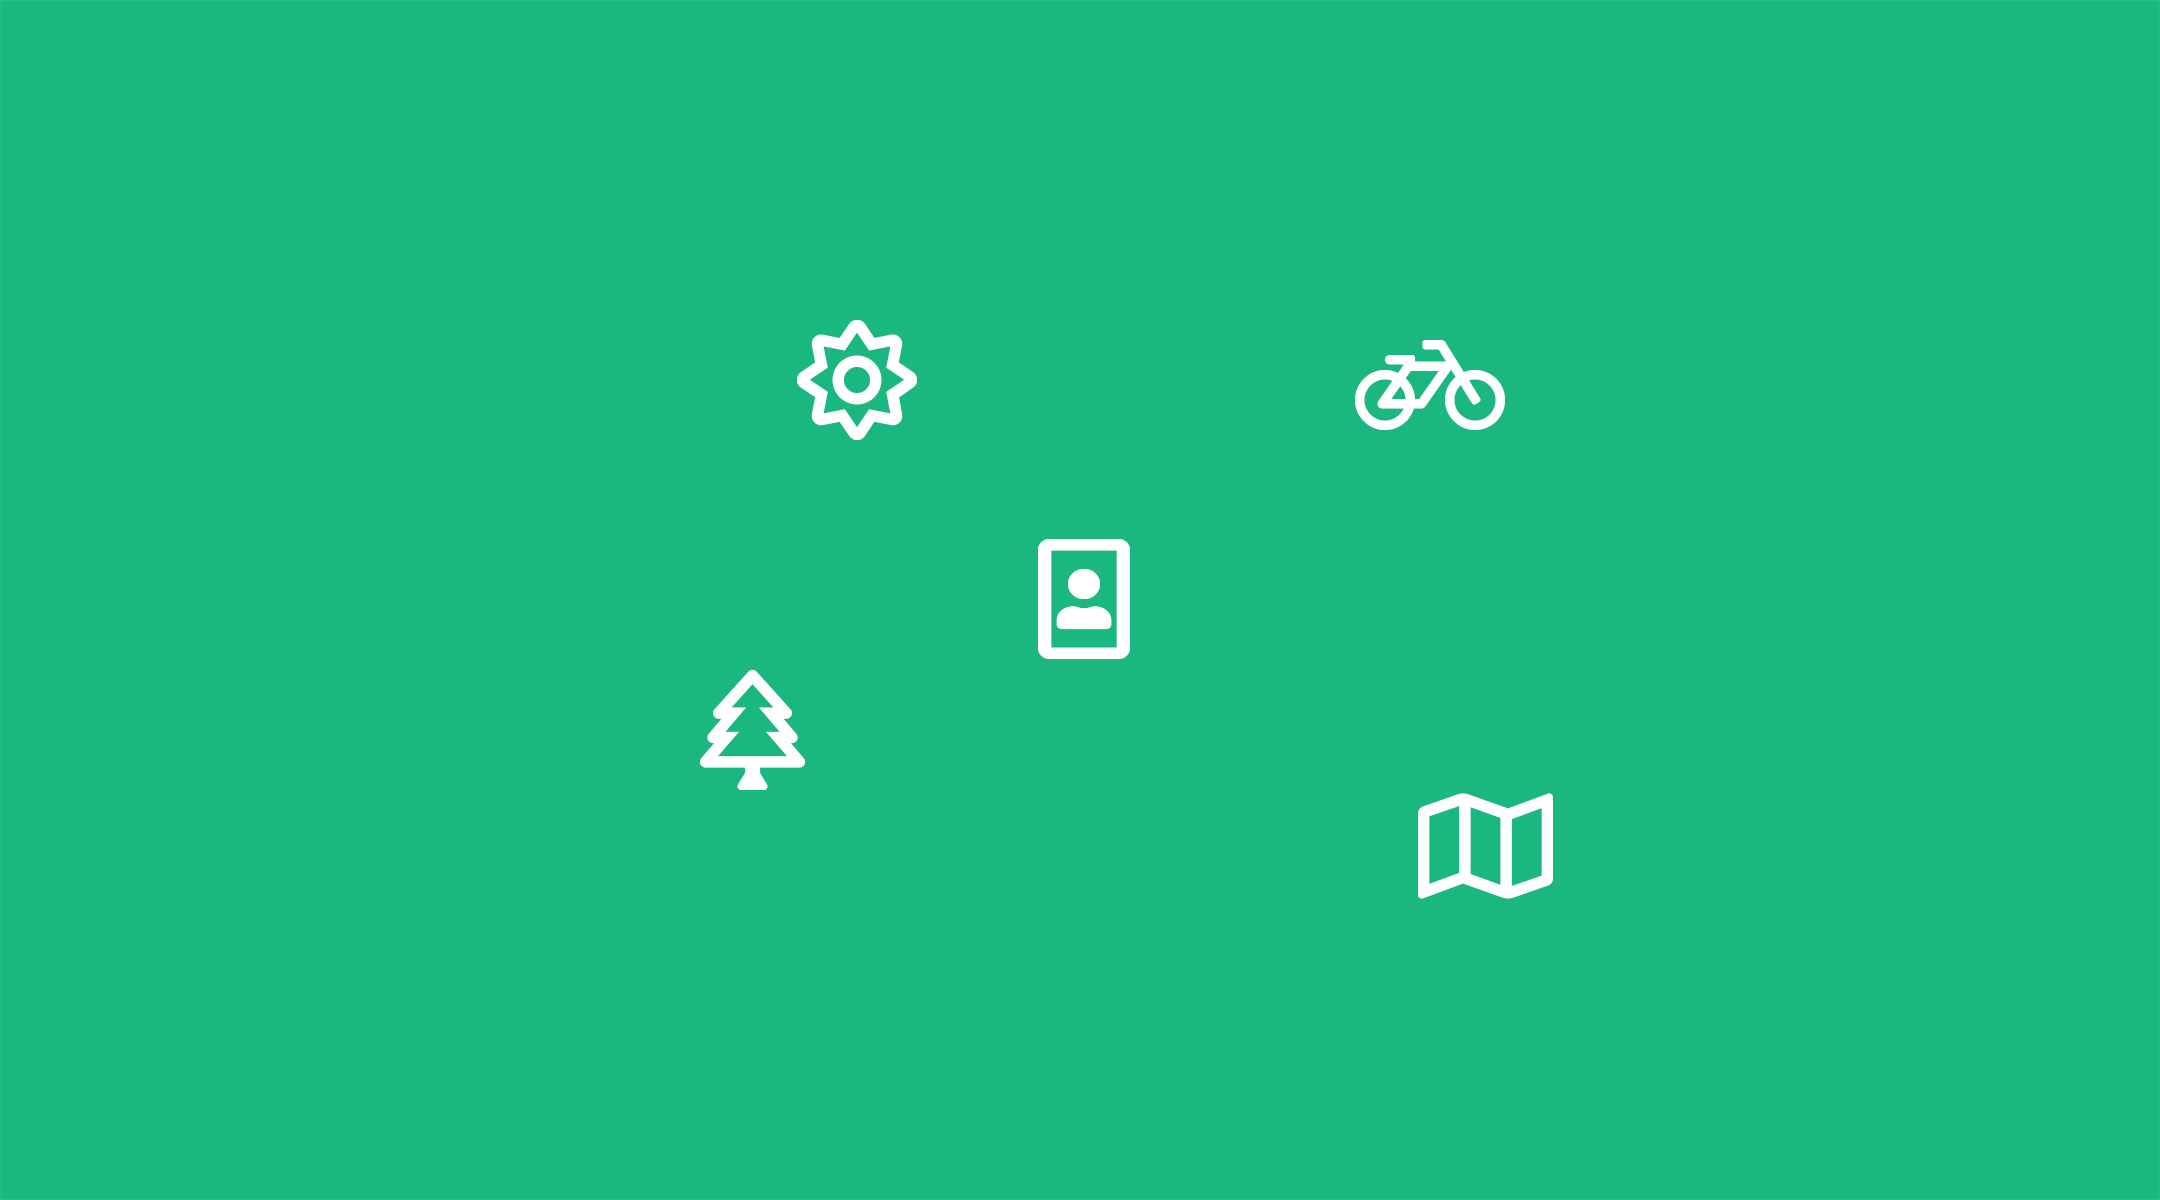 symbols showing touristic activities on green background